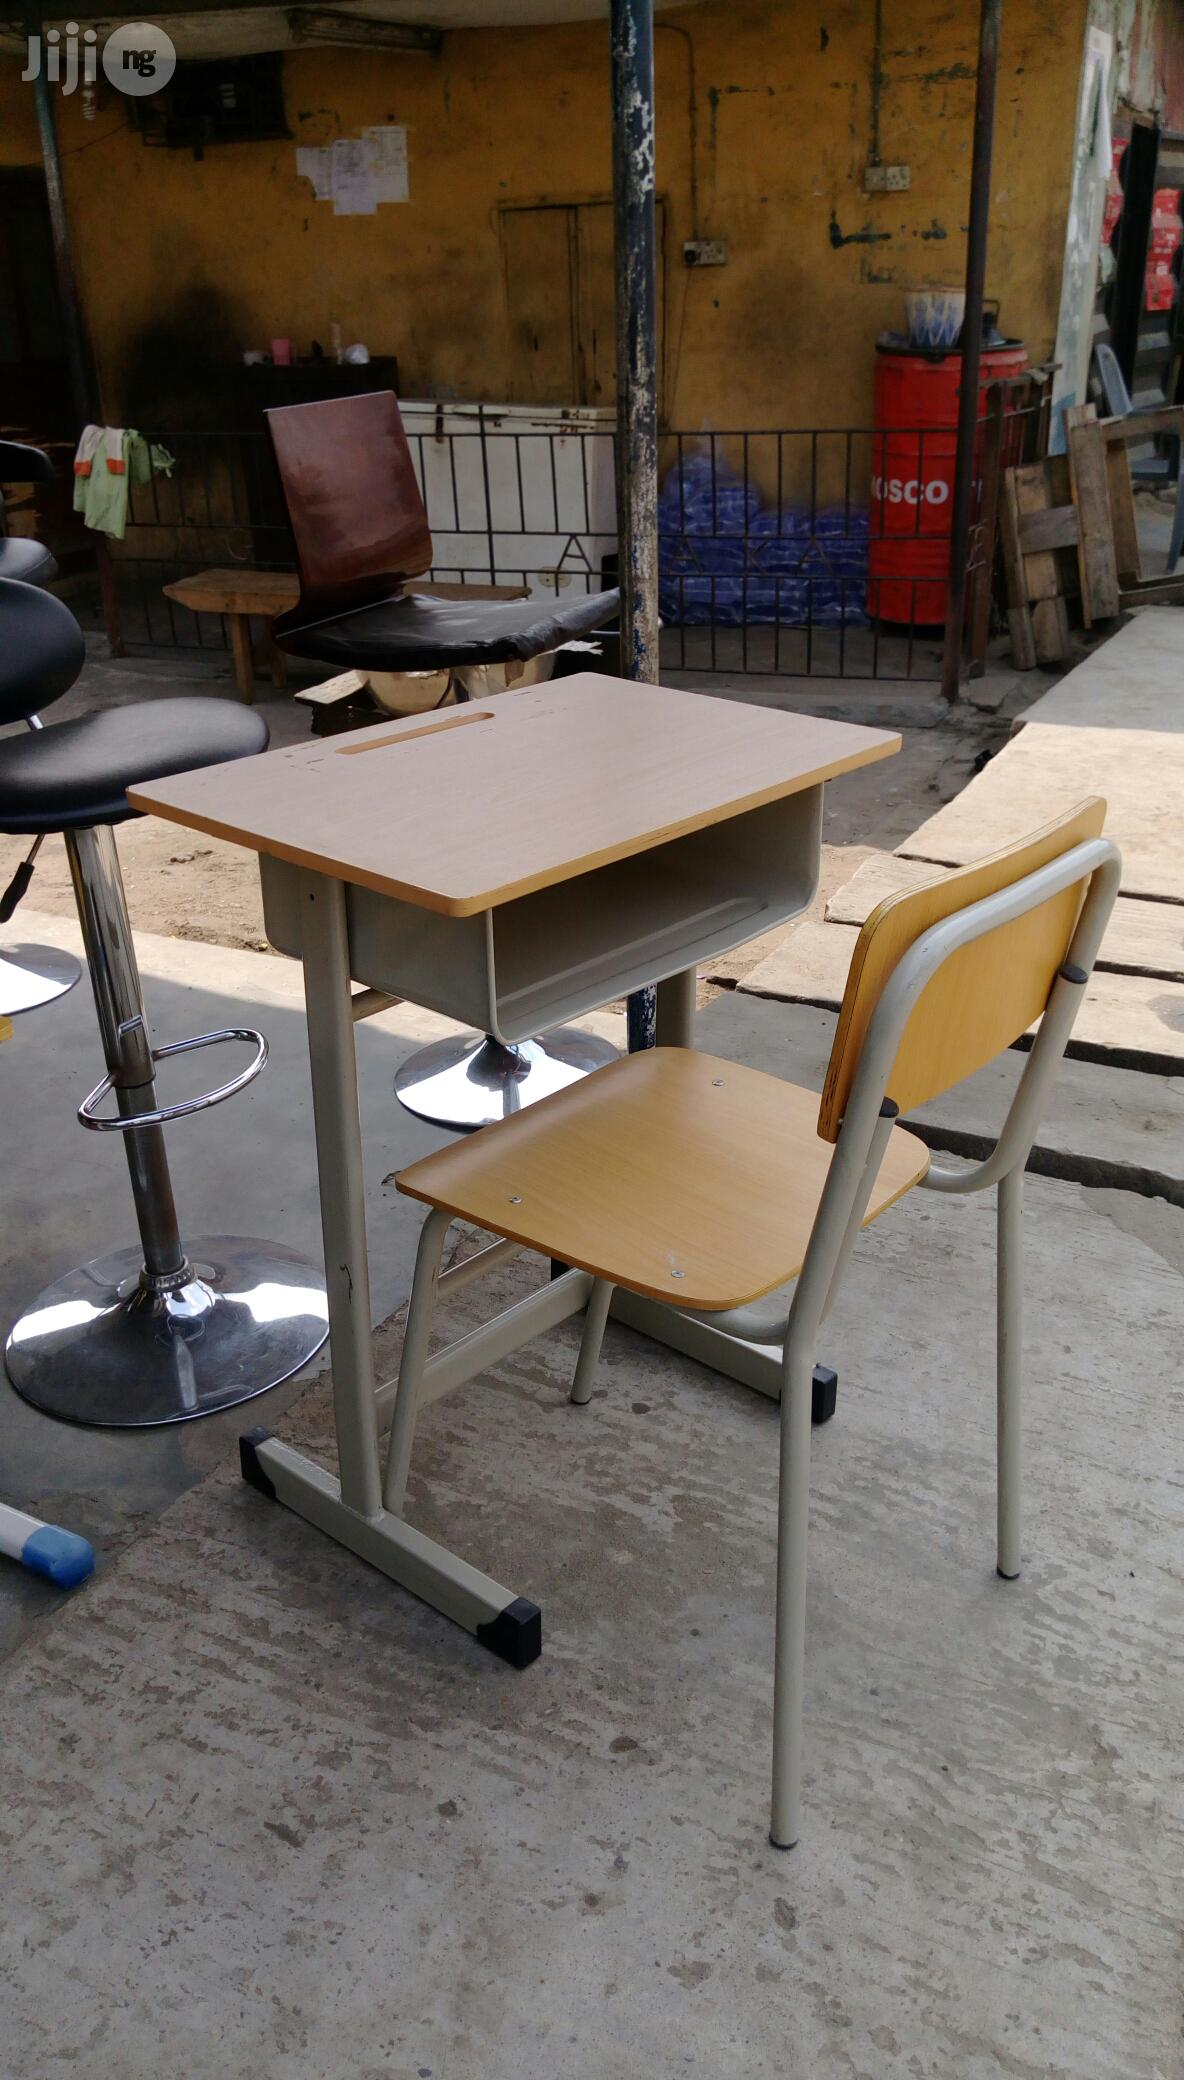 School Chairs | Furniture for sale in Central Business Dis, Abuja (FCT) State, Nigeria